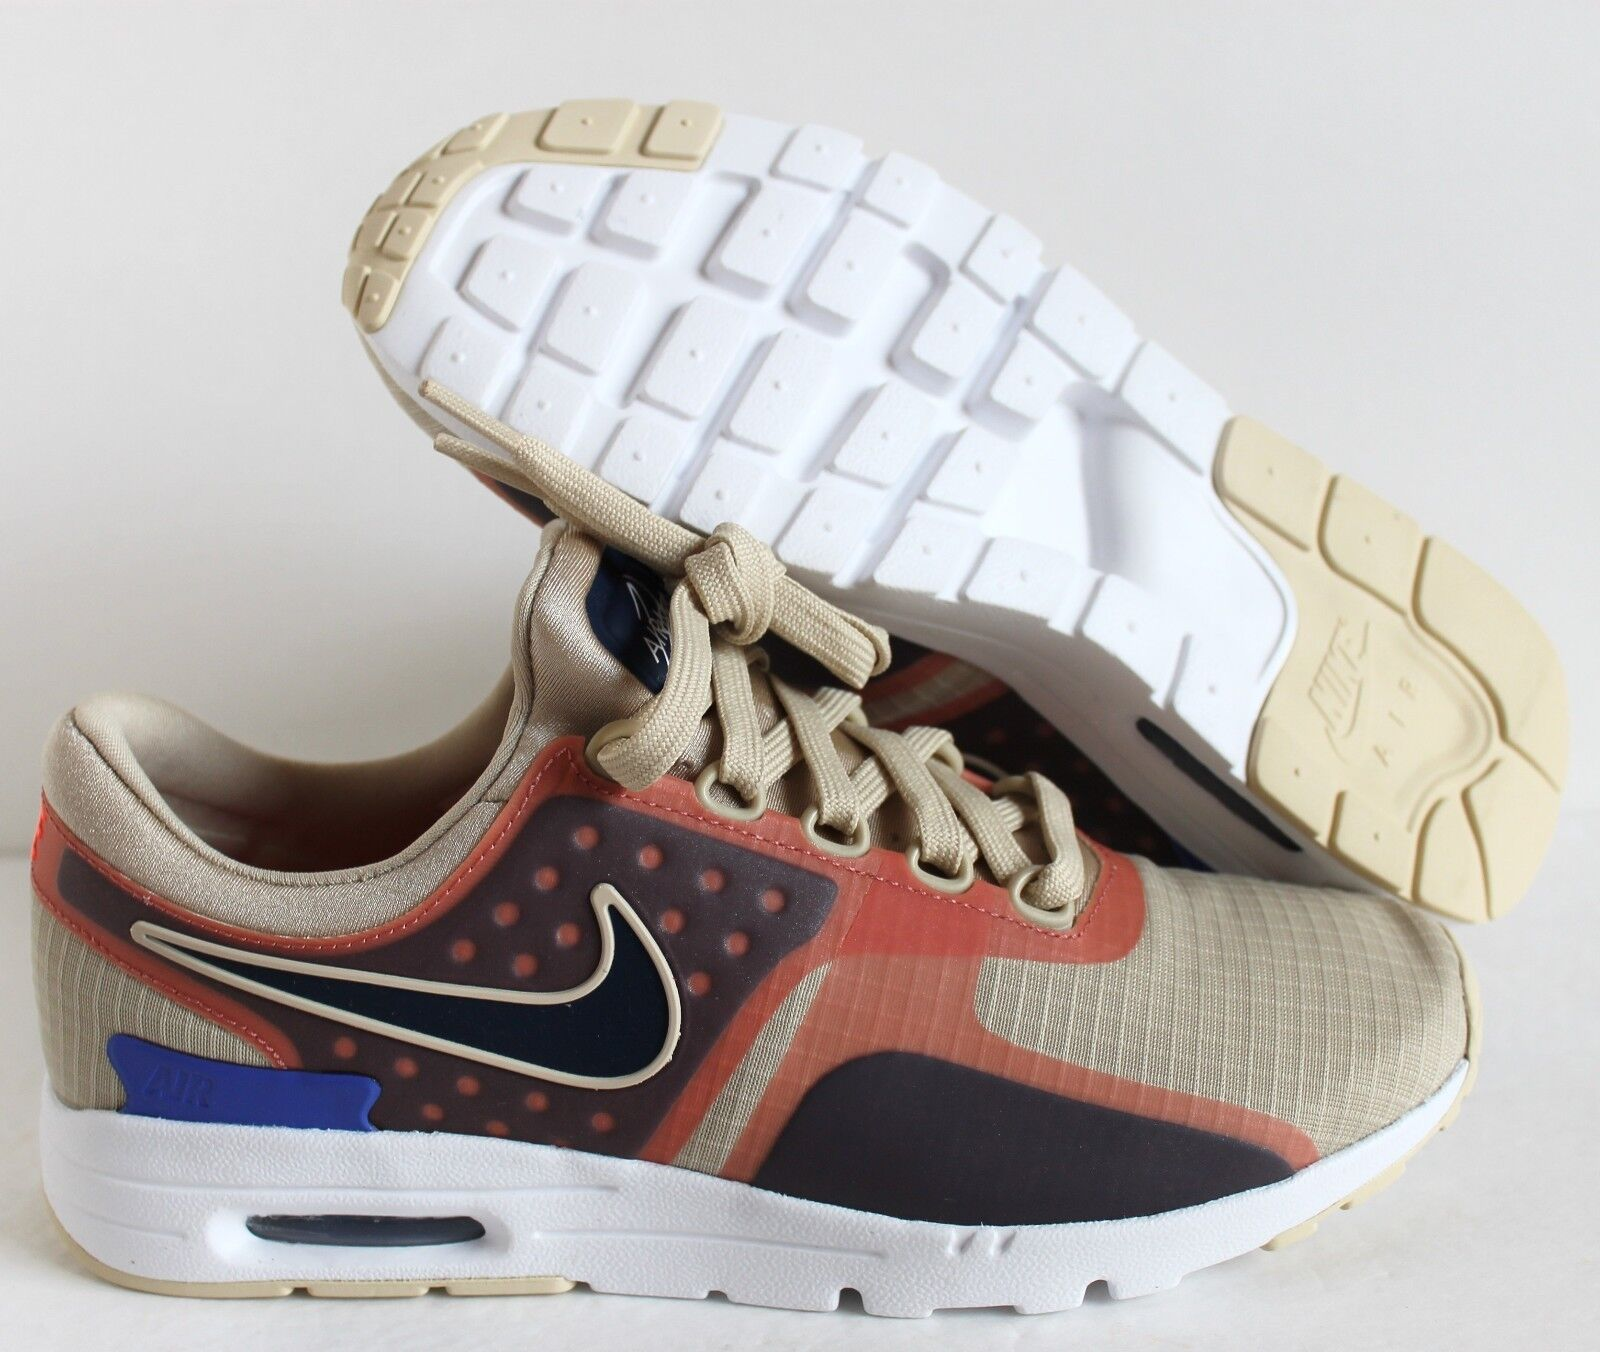 NIKE WOMEN AIR MAX 7 ZERO SI OATMEAL/BINARY BLUE-WHITE SZ 7 MAX [881173-101] 7cb629